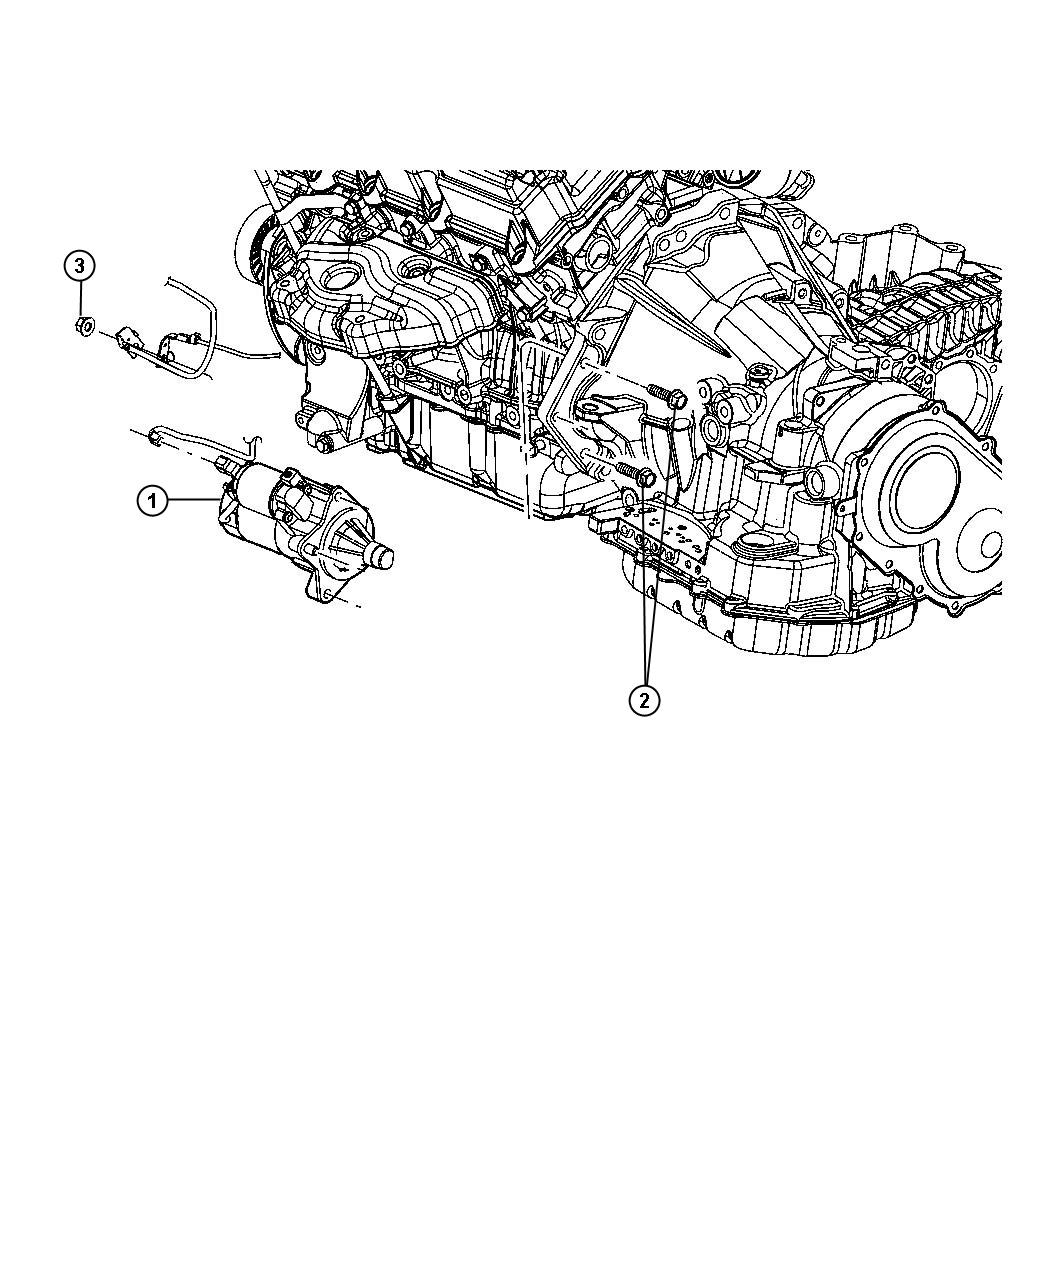 Dodge Avenger Starter And Related Parts